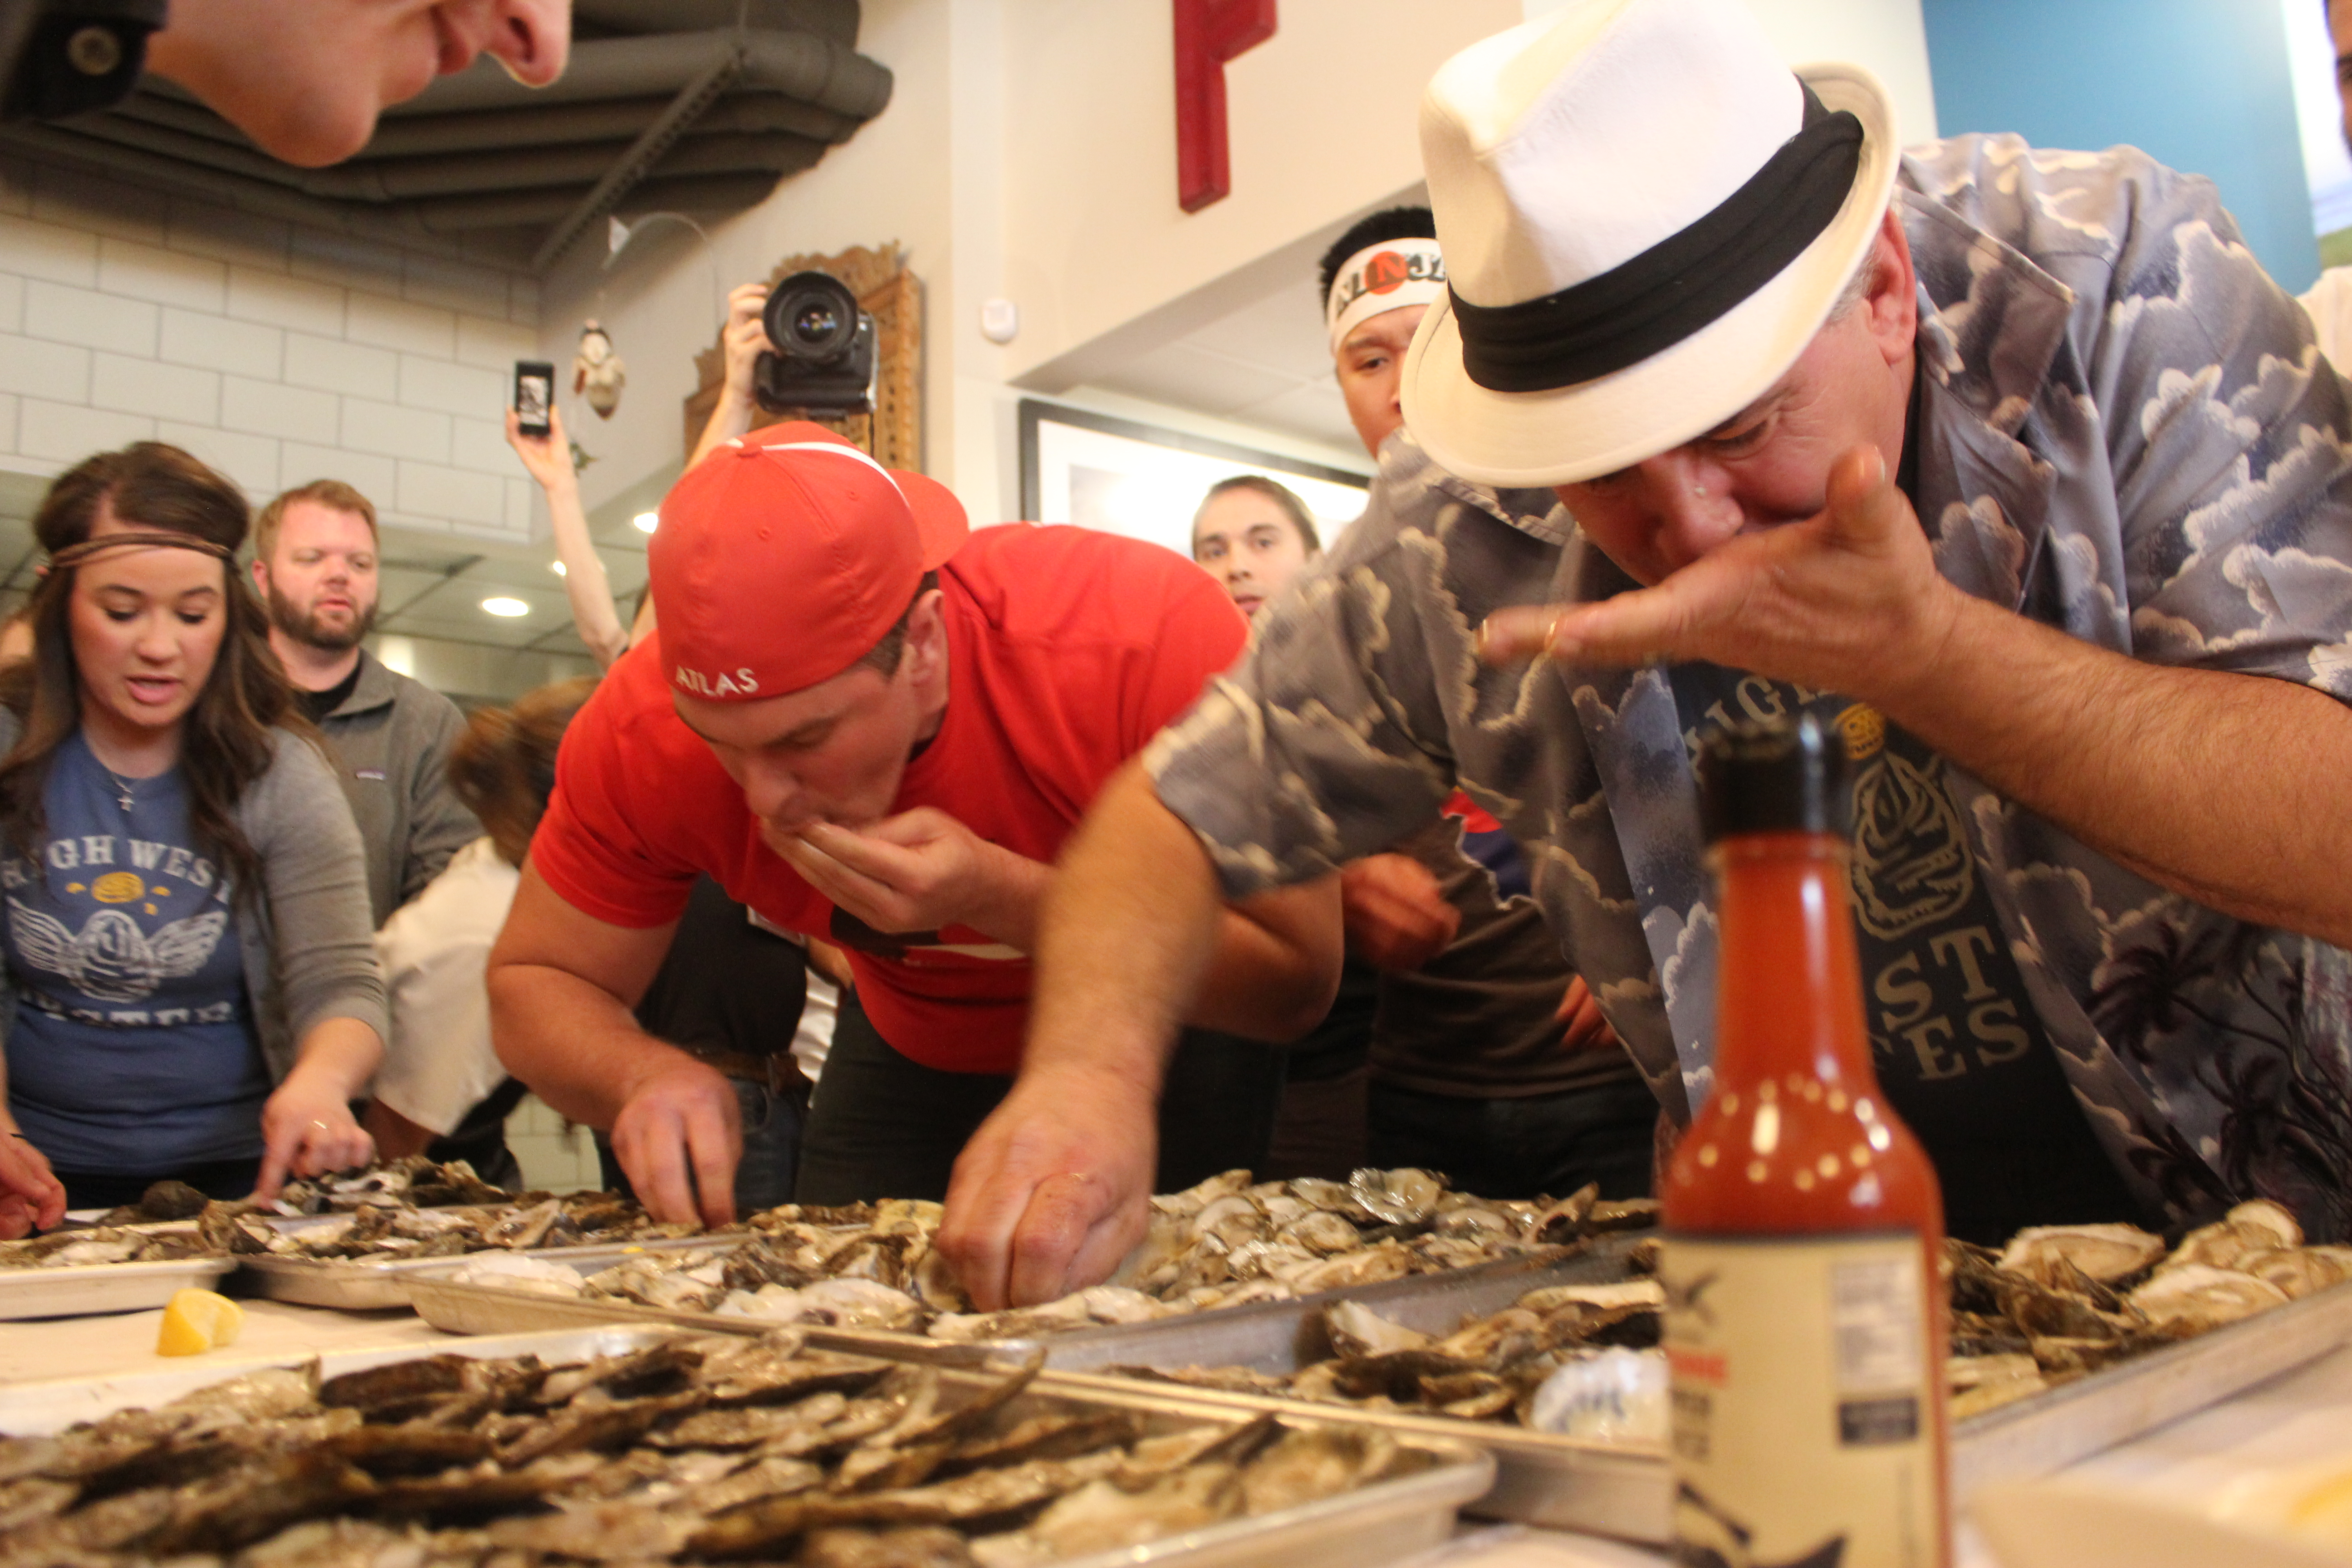 Slurping oysters will win one lucky team 1 at the second